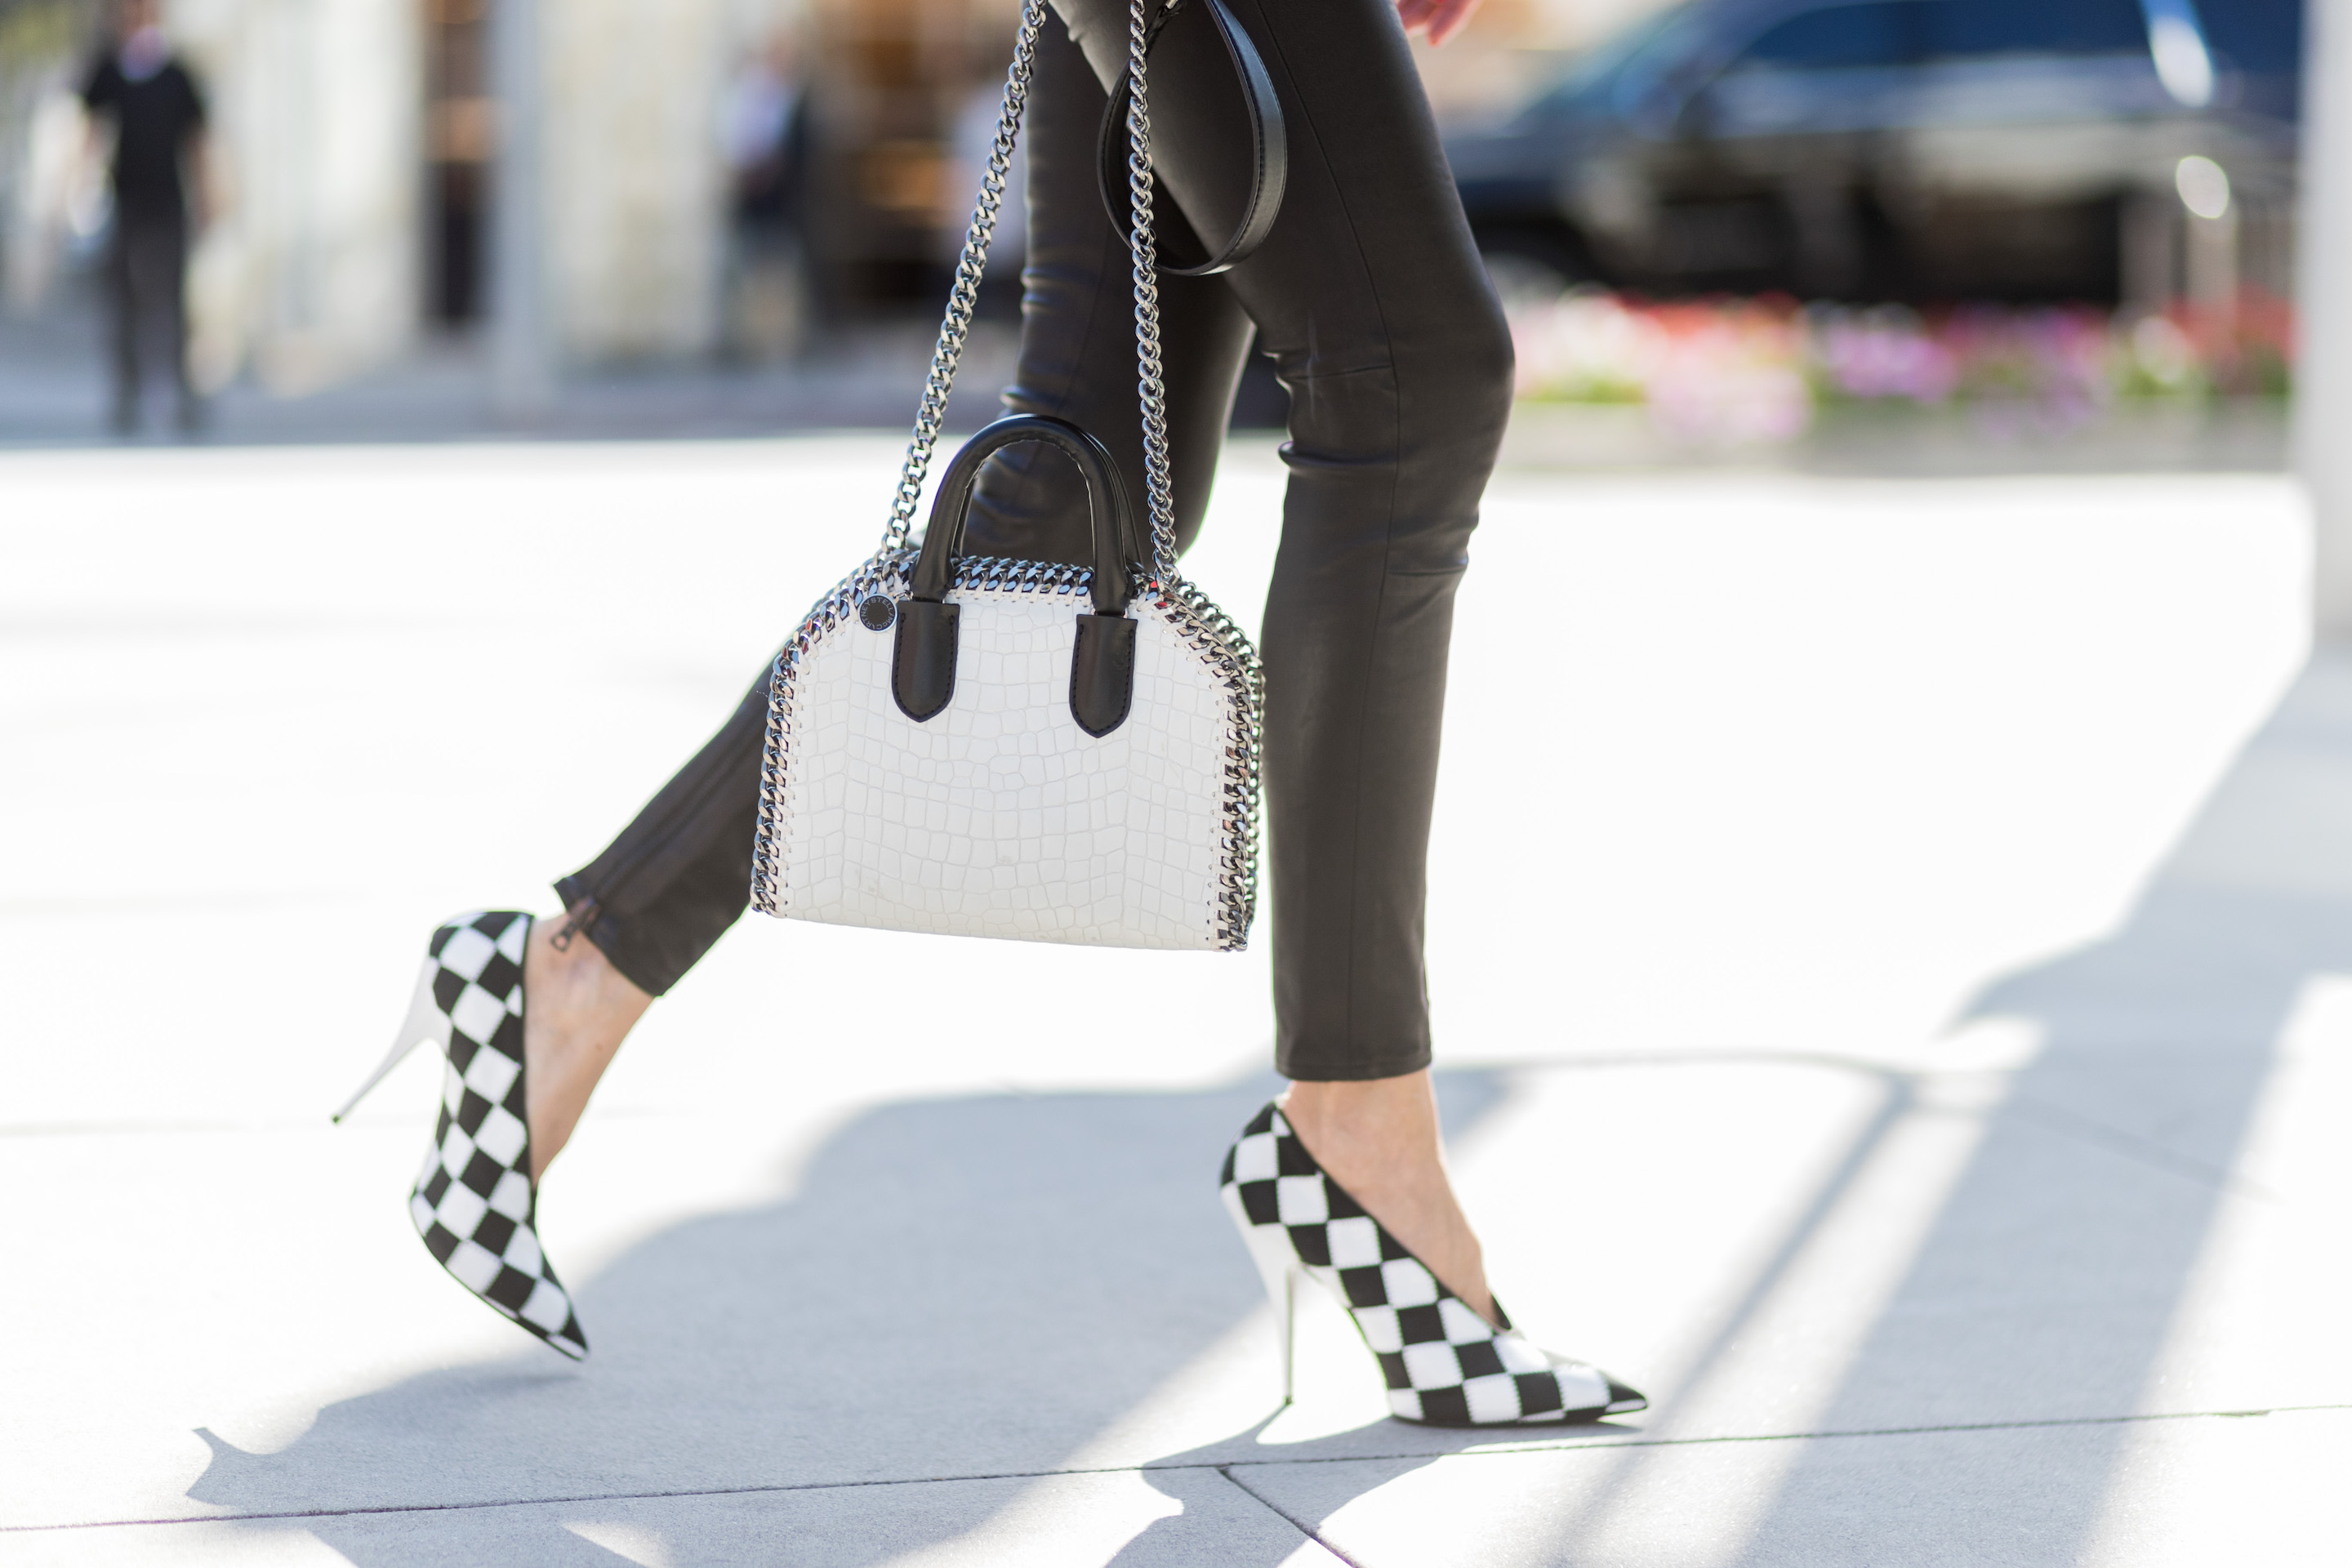 Faux leather is increasingly represented in fashion, and is sometimes mixed with the real thing. This model is wearing skinny leather pants by Unravel, paired with black and white vegan patent Stella McCartney check pointed-toe pumps, and is carrying a Falabella Box mini faux-leather cross-body bag.